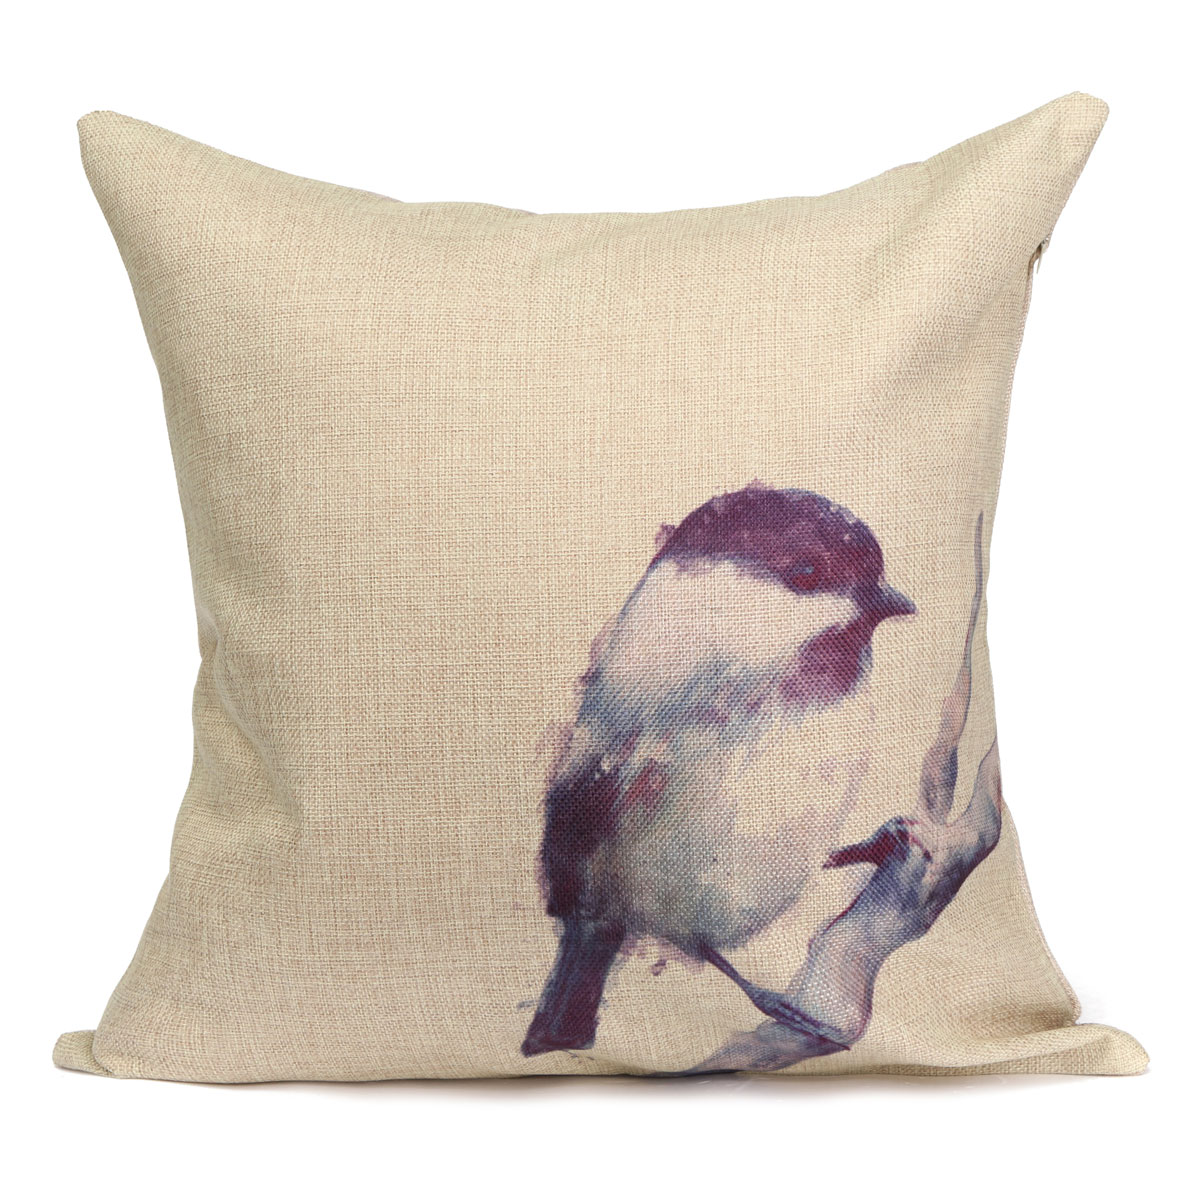 Square Throw Pillow Cases : Animal Home Square Pillowcase Bed Sofa Throw Pillow Cases Car Back Cushion Cover